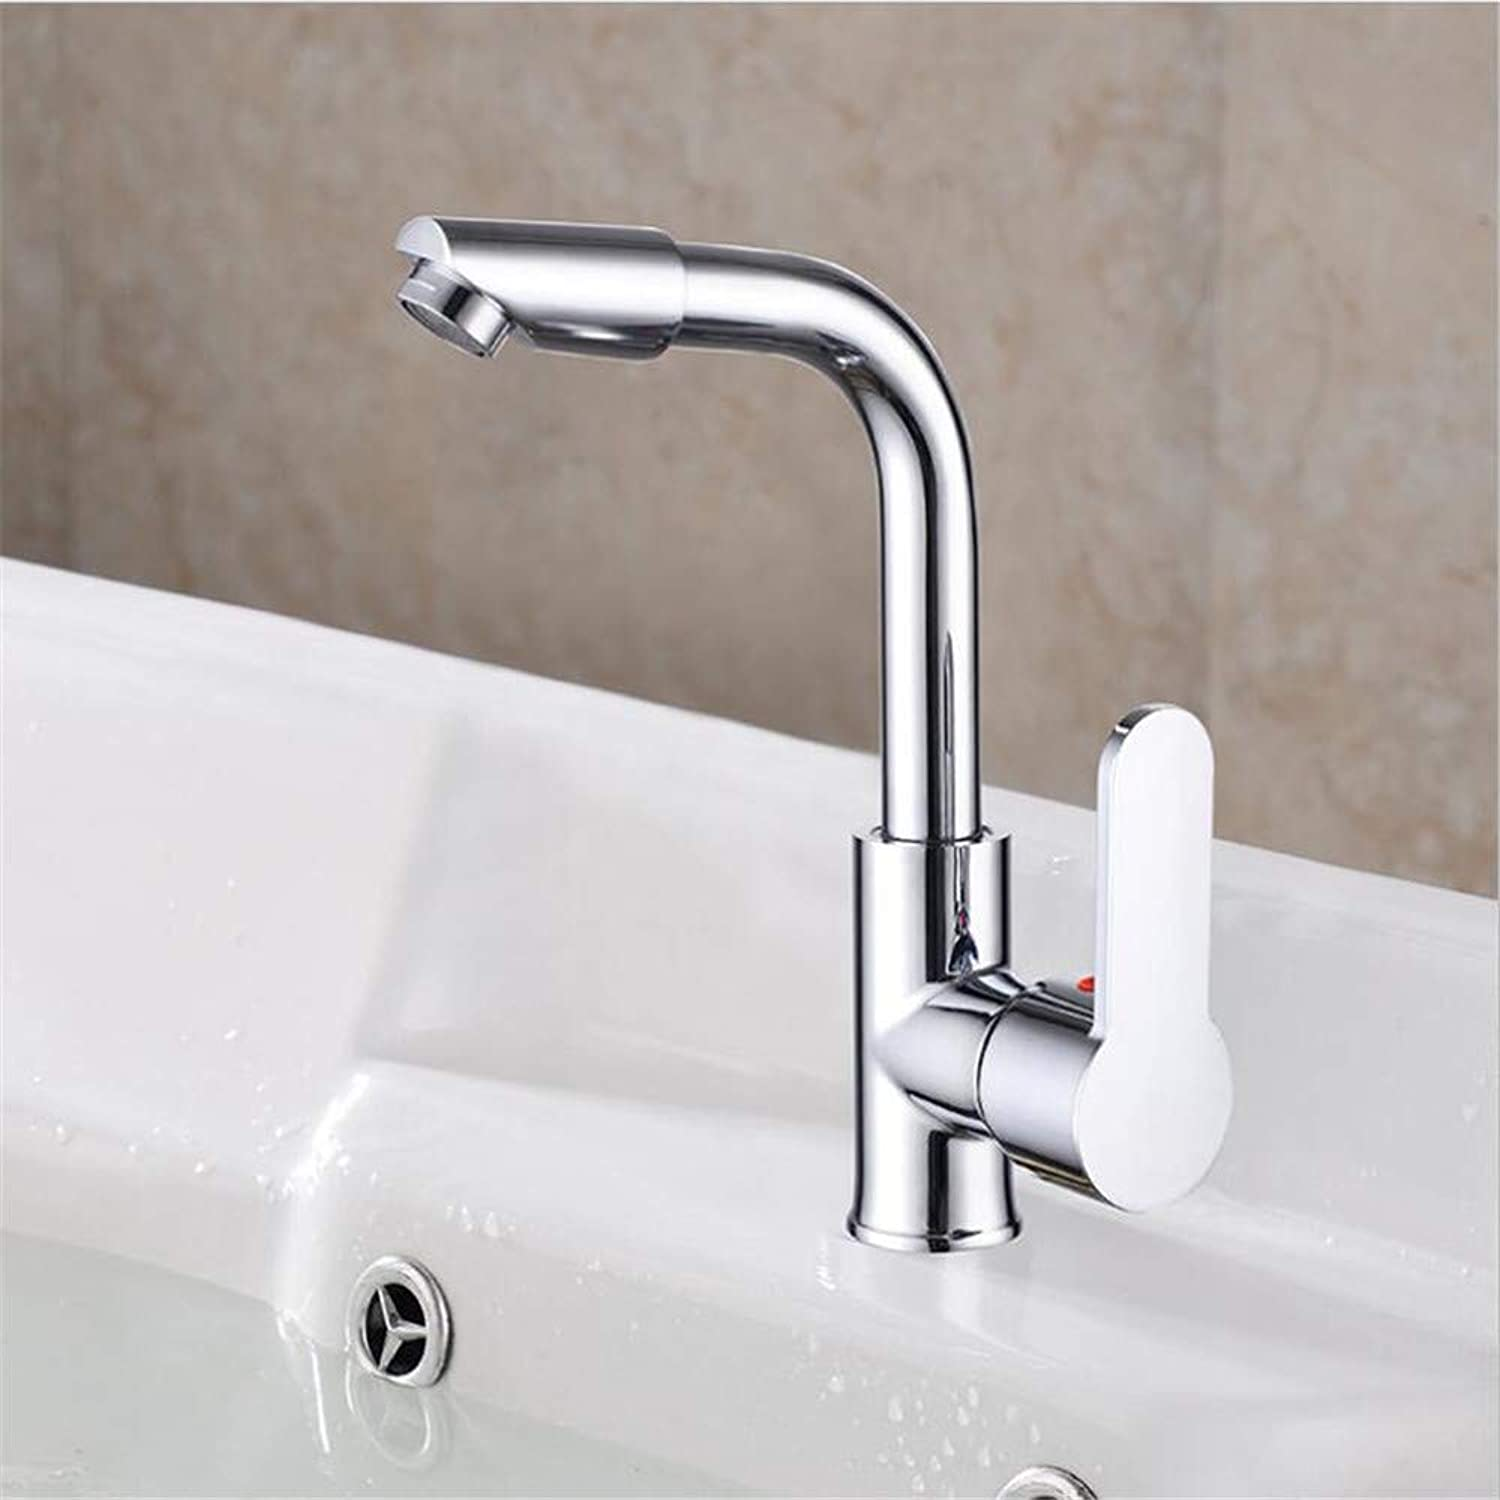 Basin Mixer Tap ?Copper Core Flat Three-Way Basin Bathroom Cabinet Faucet Hot and Cold Sink redating Faucet